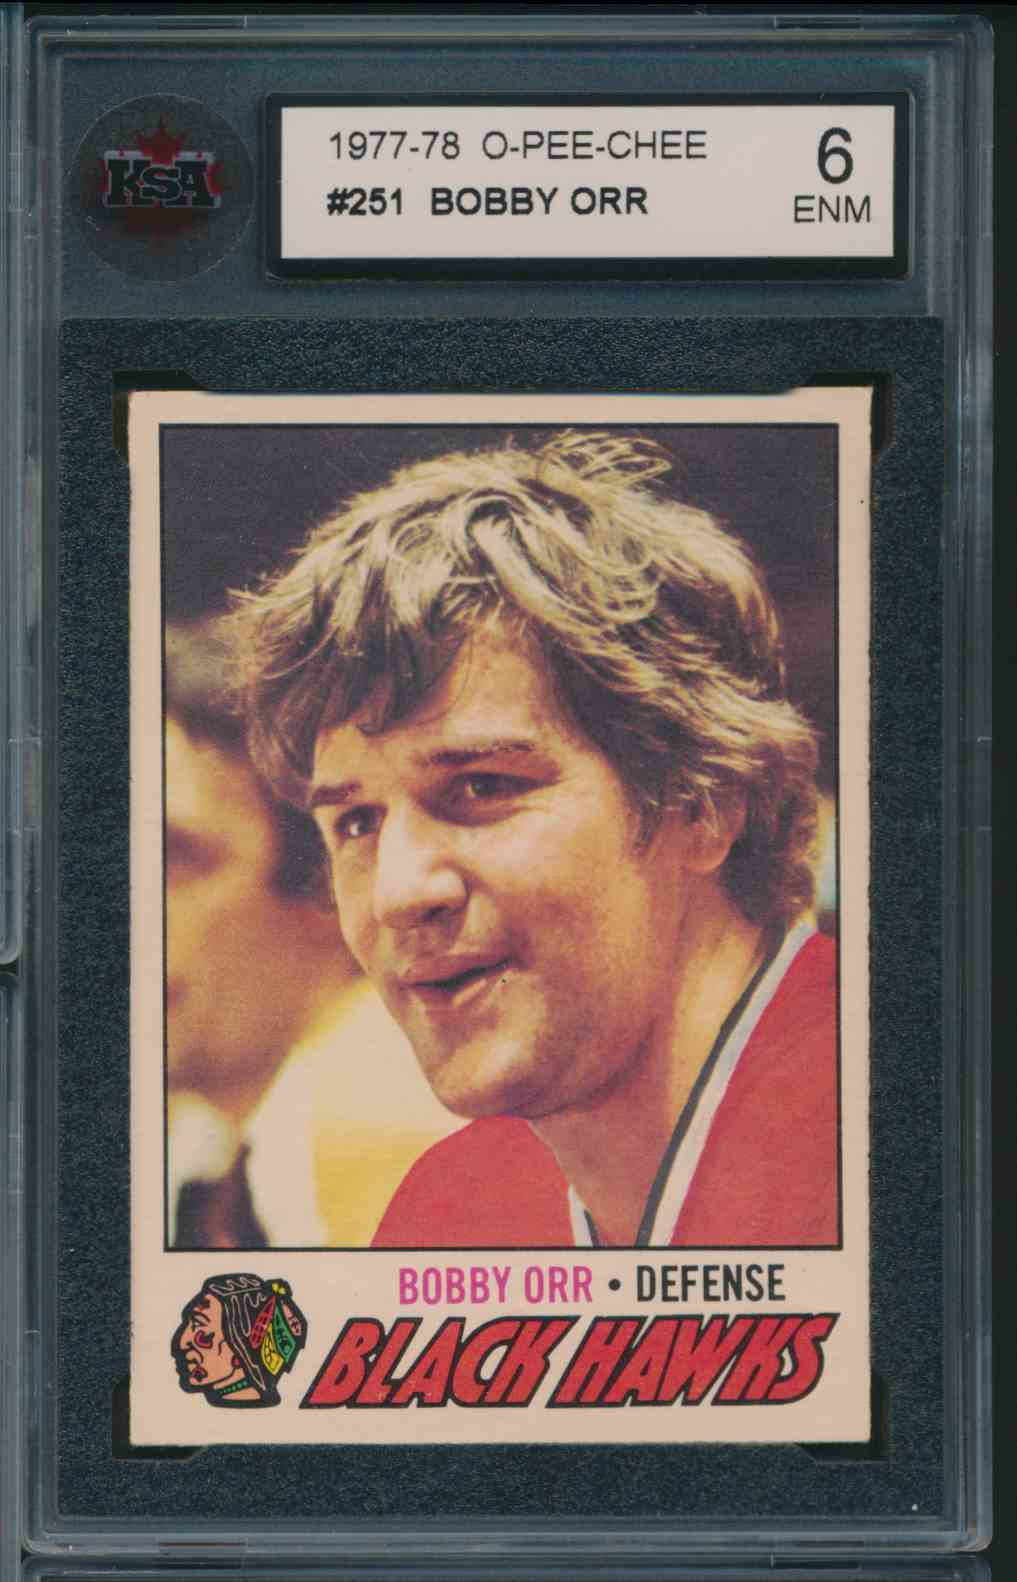 1977-78 O-Pee-Chee Bobby Orr #251 card front image